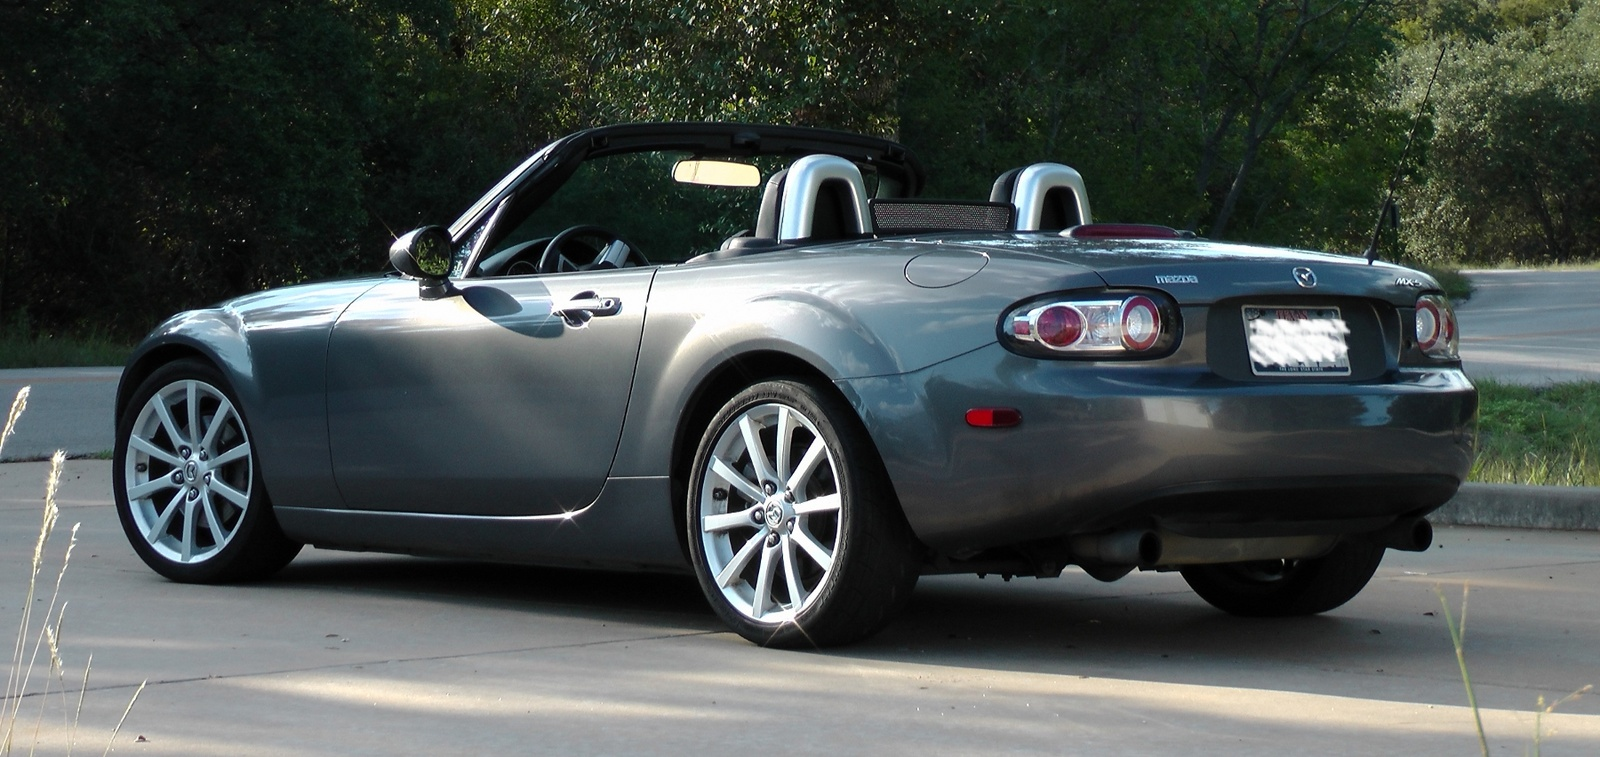 2008 mazda mx 5 miata exterior pictures cargurus. Black Bedroom Furniture Sets. Home Design Ideas